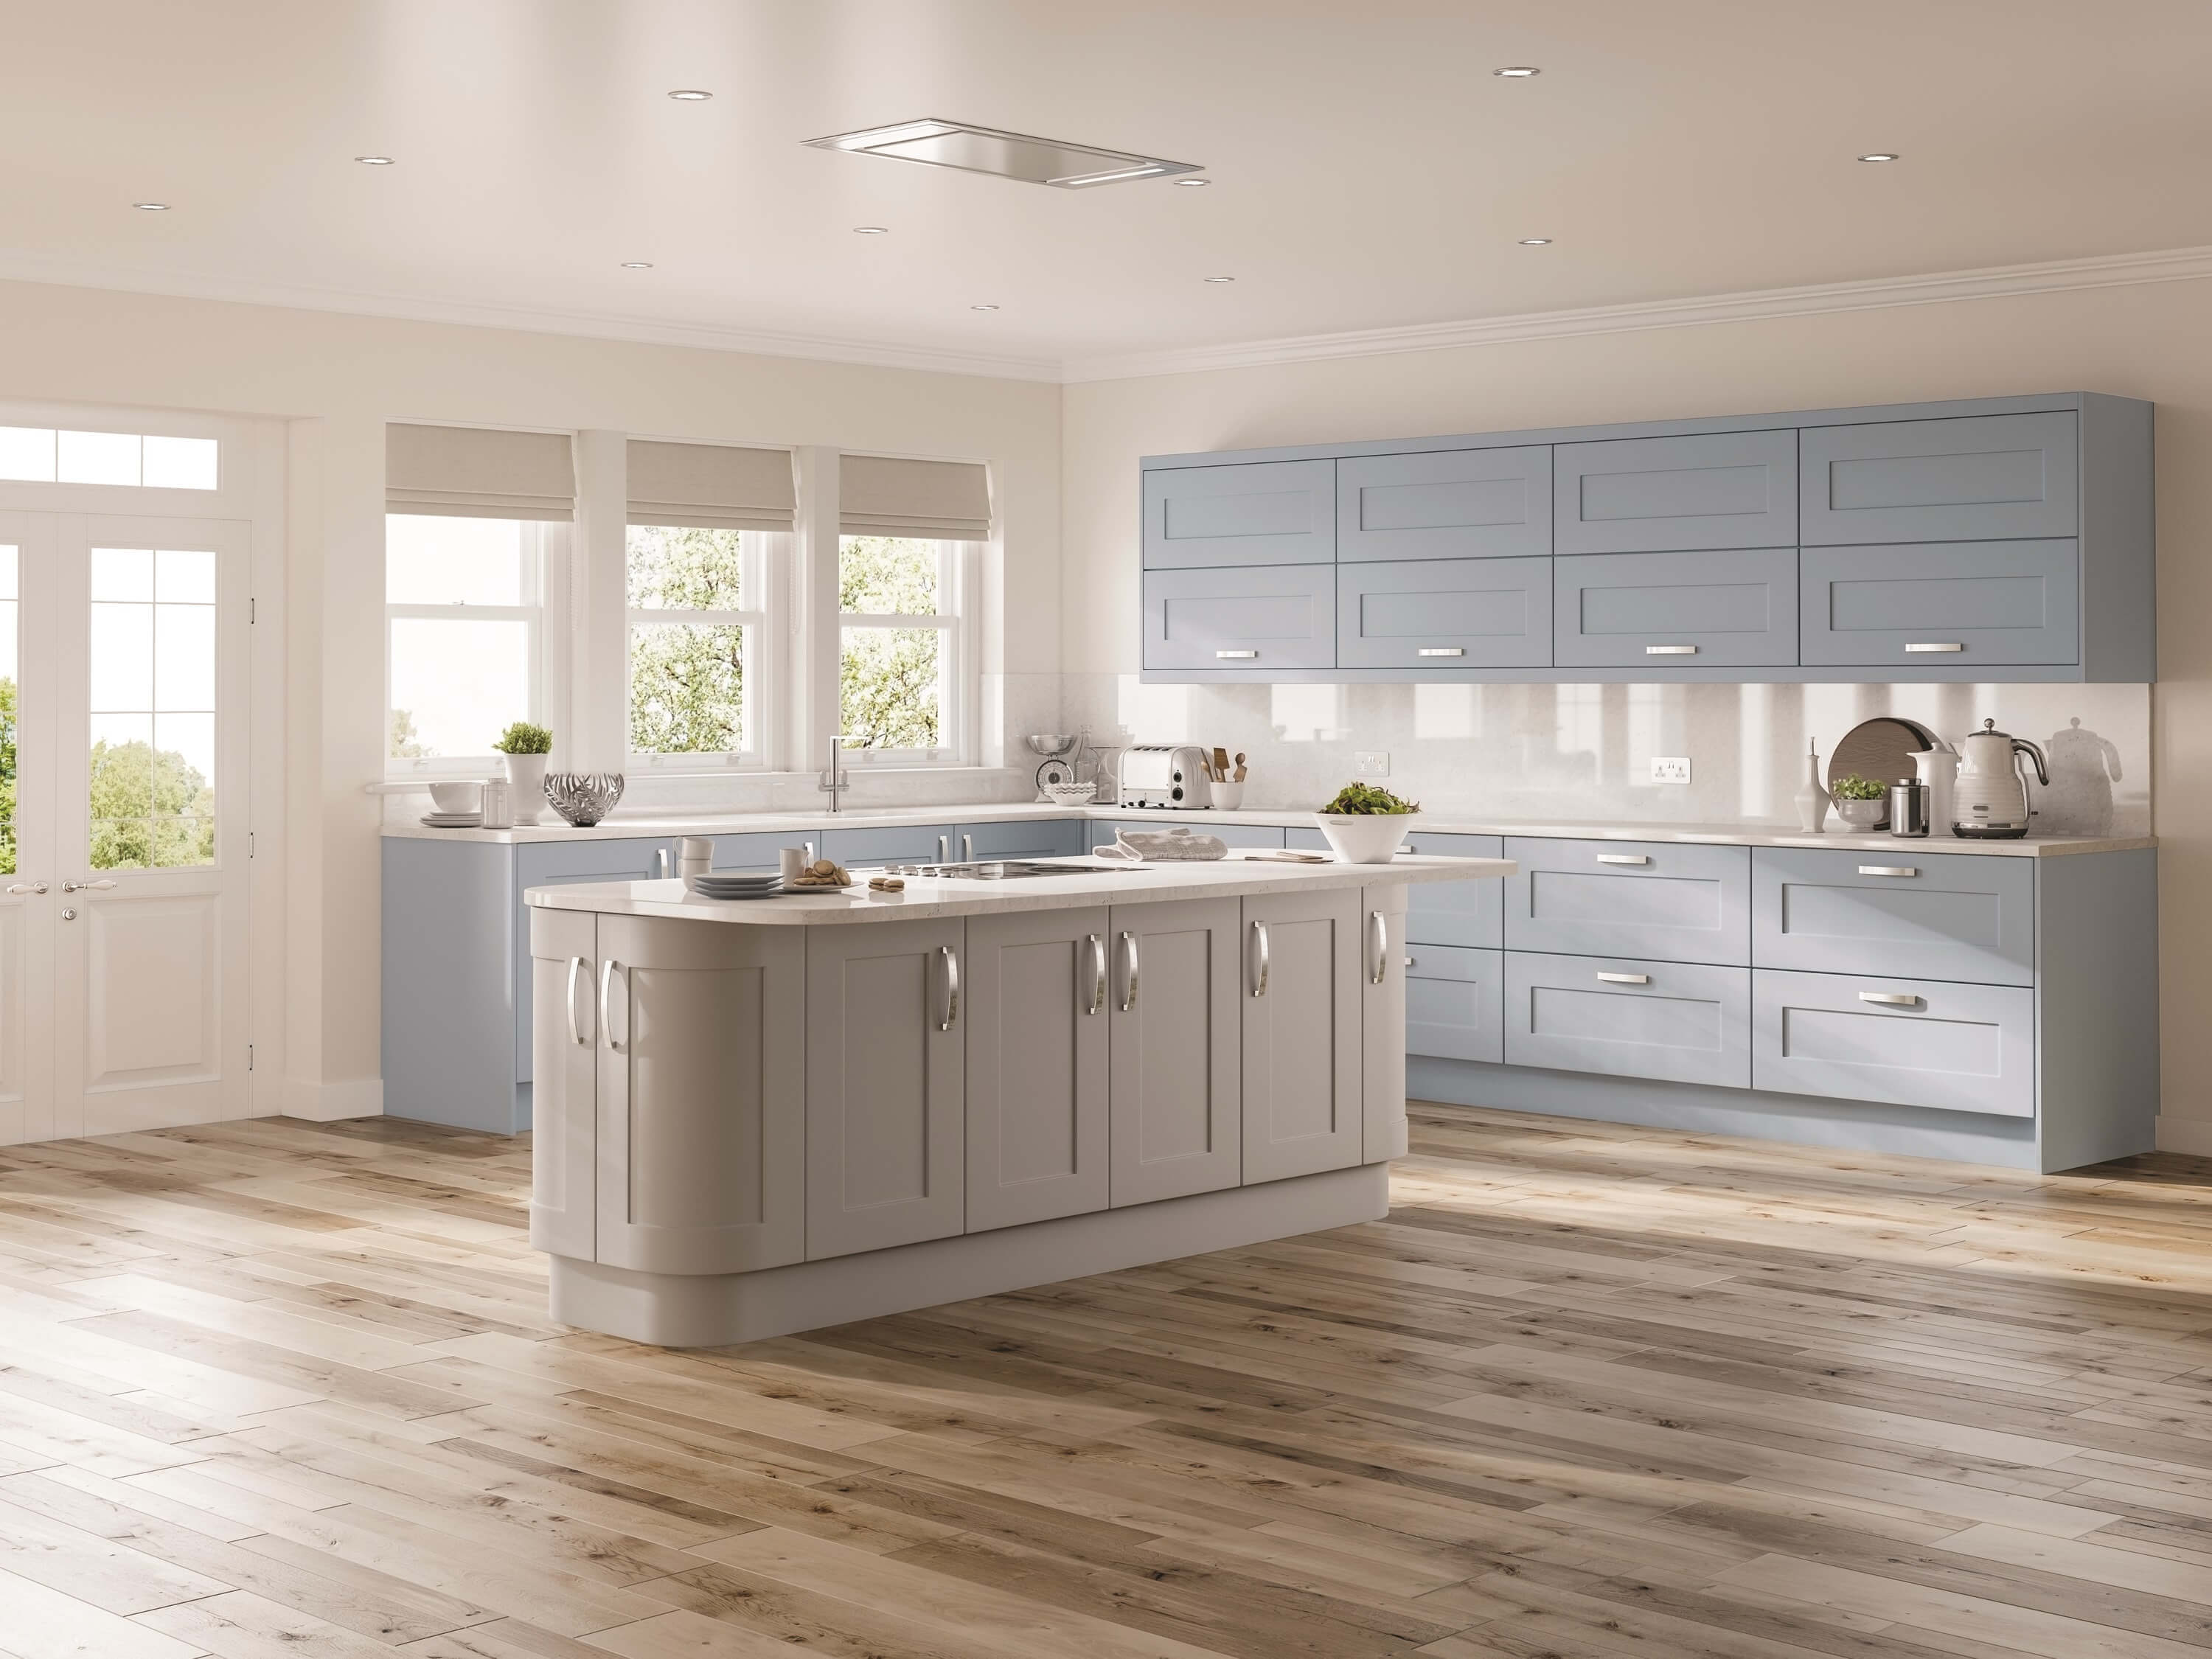 Eco-Kitchens-Solent-Gallery2